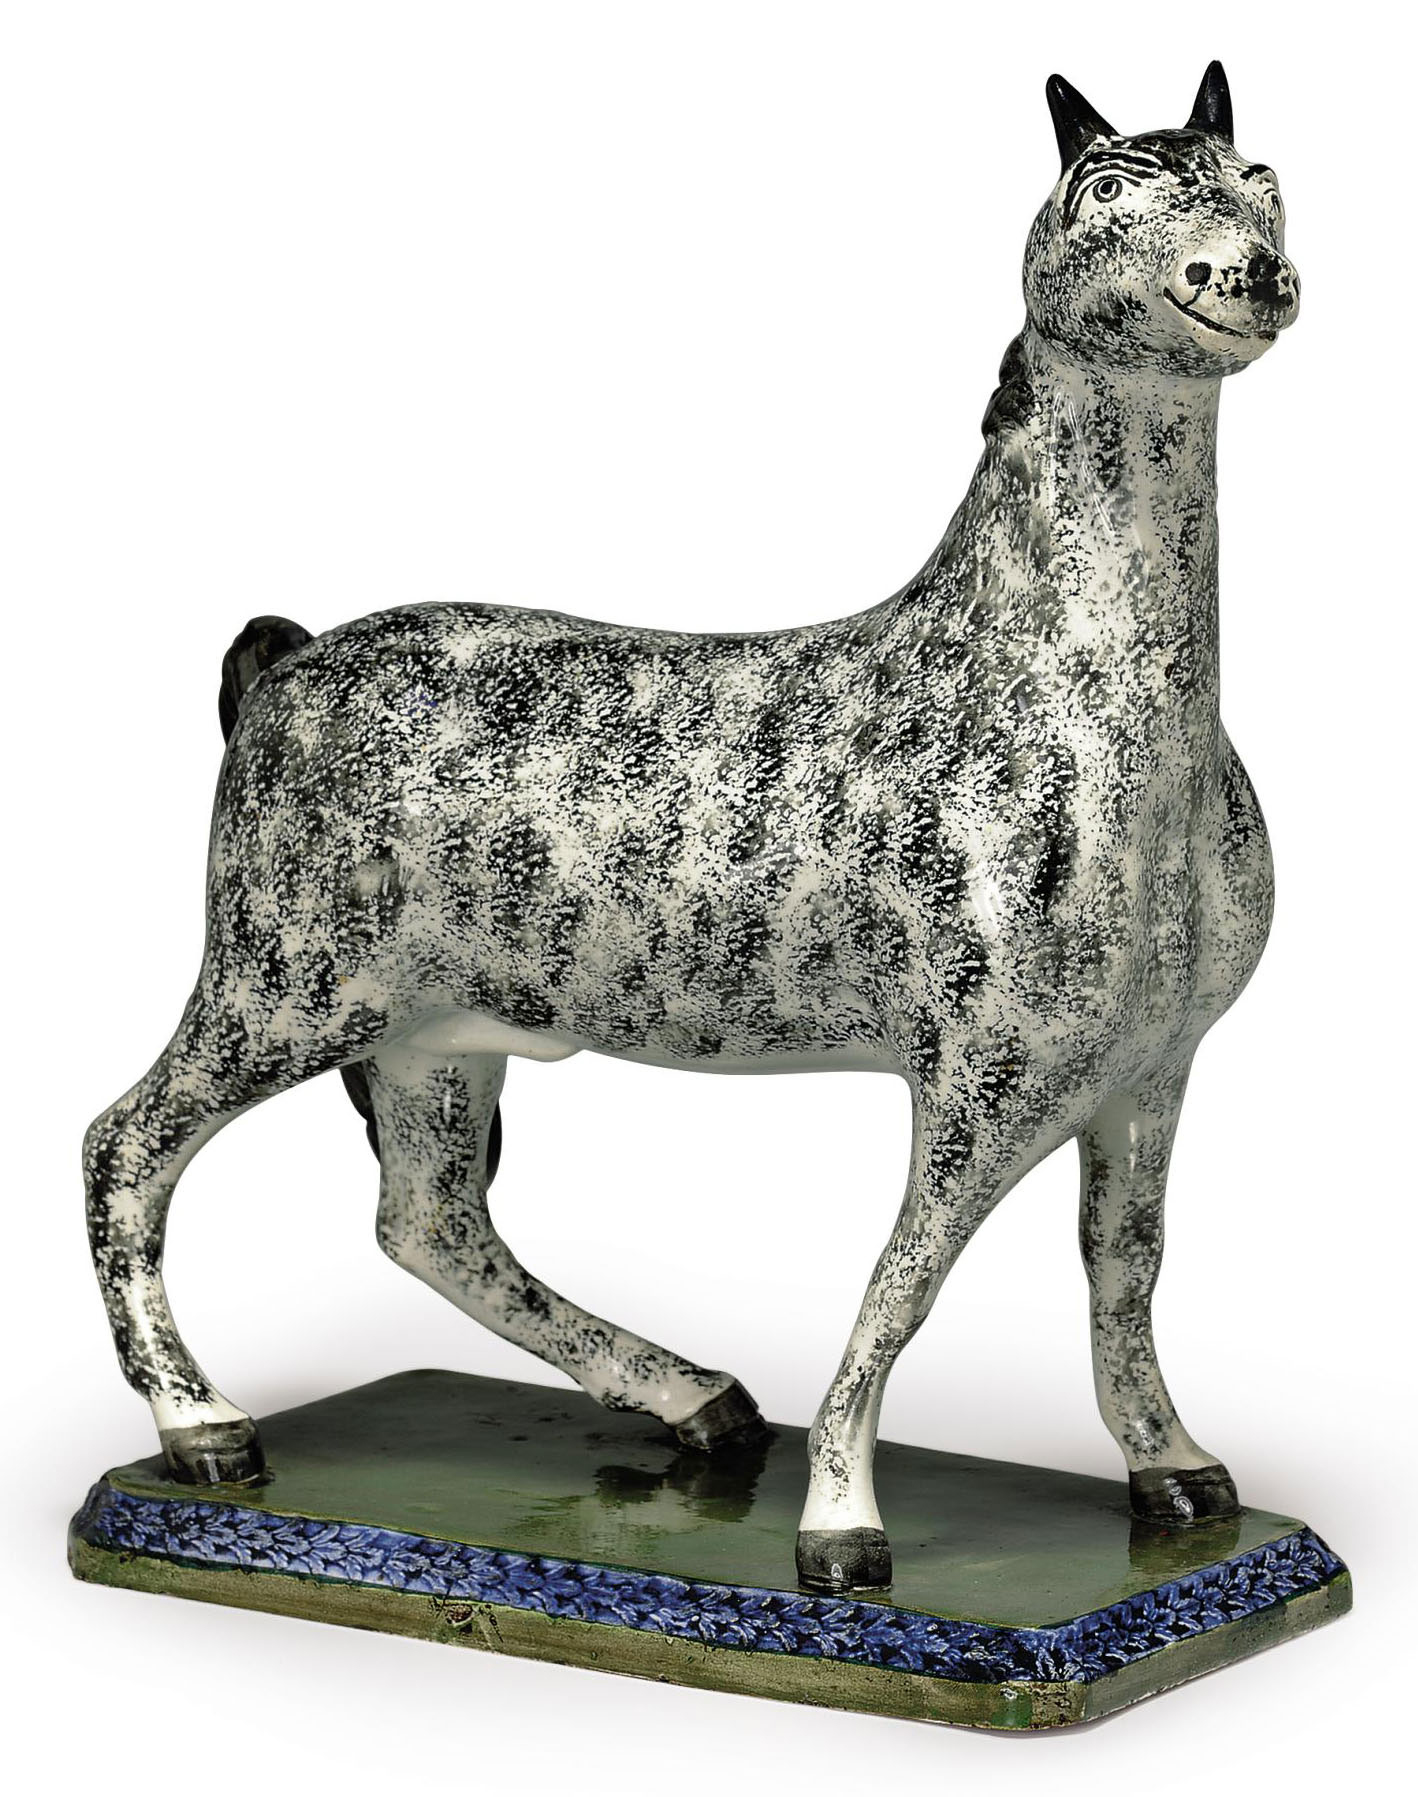 A LEEDS PEARLWARE MODEL OF A STALLION